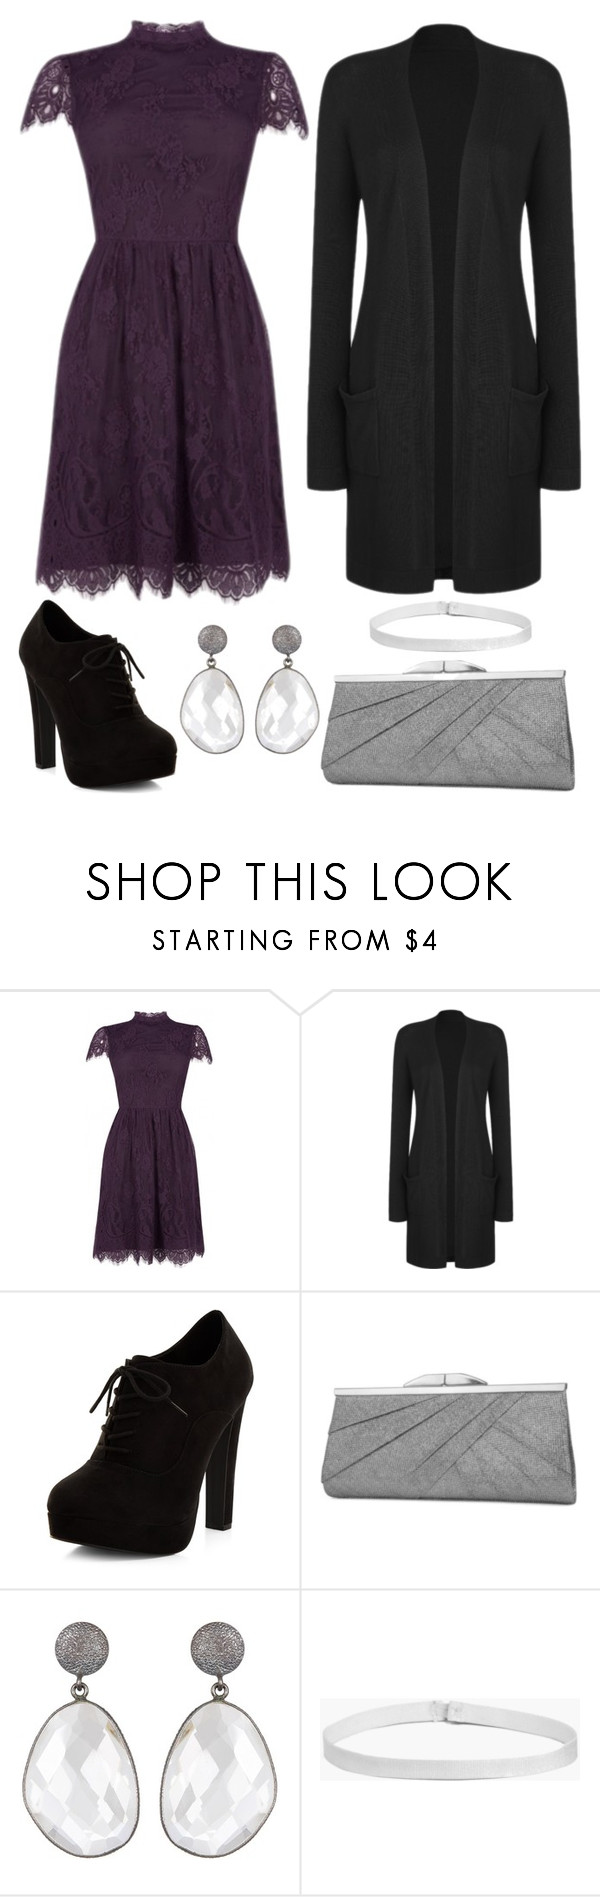 """Interlude"" by staysaneinsideinsanity ❤ liked on Polyvore featuring New Look, Jessica McClintock and Boohoo"